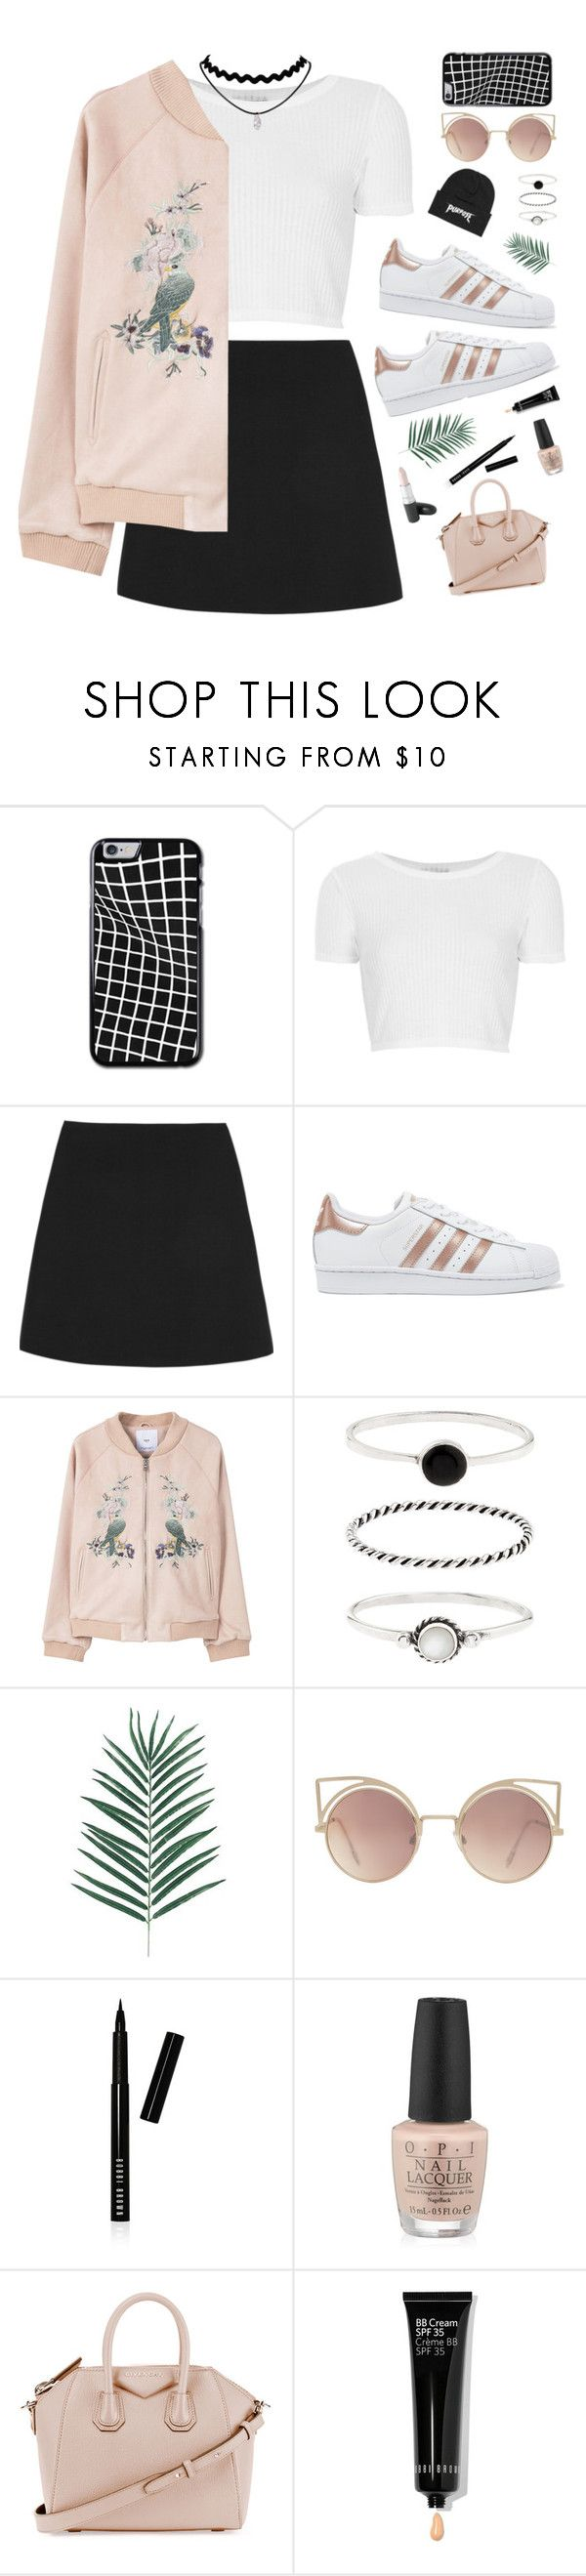 """Untitled #70"" by kettyamanda ❤ liked on Polyvore featuring Topshop, Valentino, adidas Originals, MANGO, Accessorize, Bobbi Brown Cosmetics, MAC Cosmetics and Givenchy"